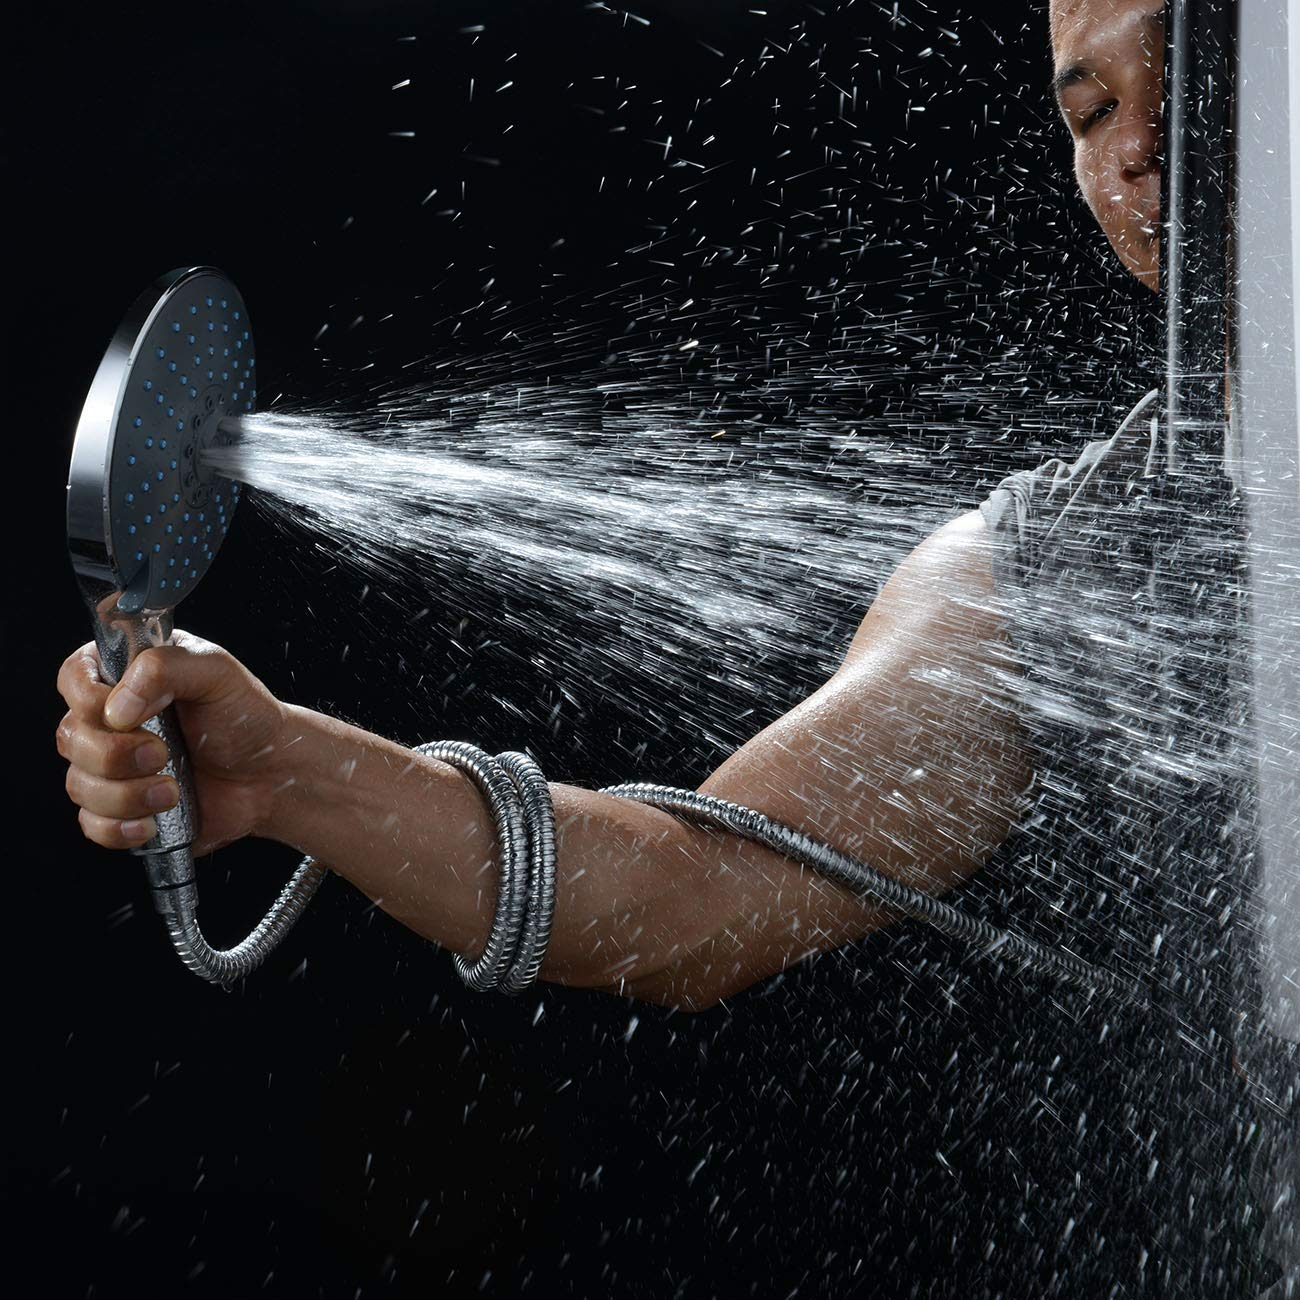 Luxury Chrome FinishHigh Pressure Handheld Shower Head,Easy to Installation HomeyStyle 7 Spray Hand Held Shower Head with Bathroom Accessories//Angle-Adjustable Bracket//5 Ft Stainless Steel Hose